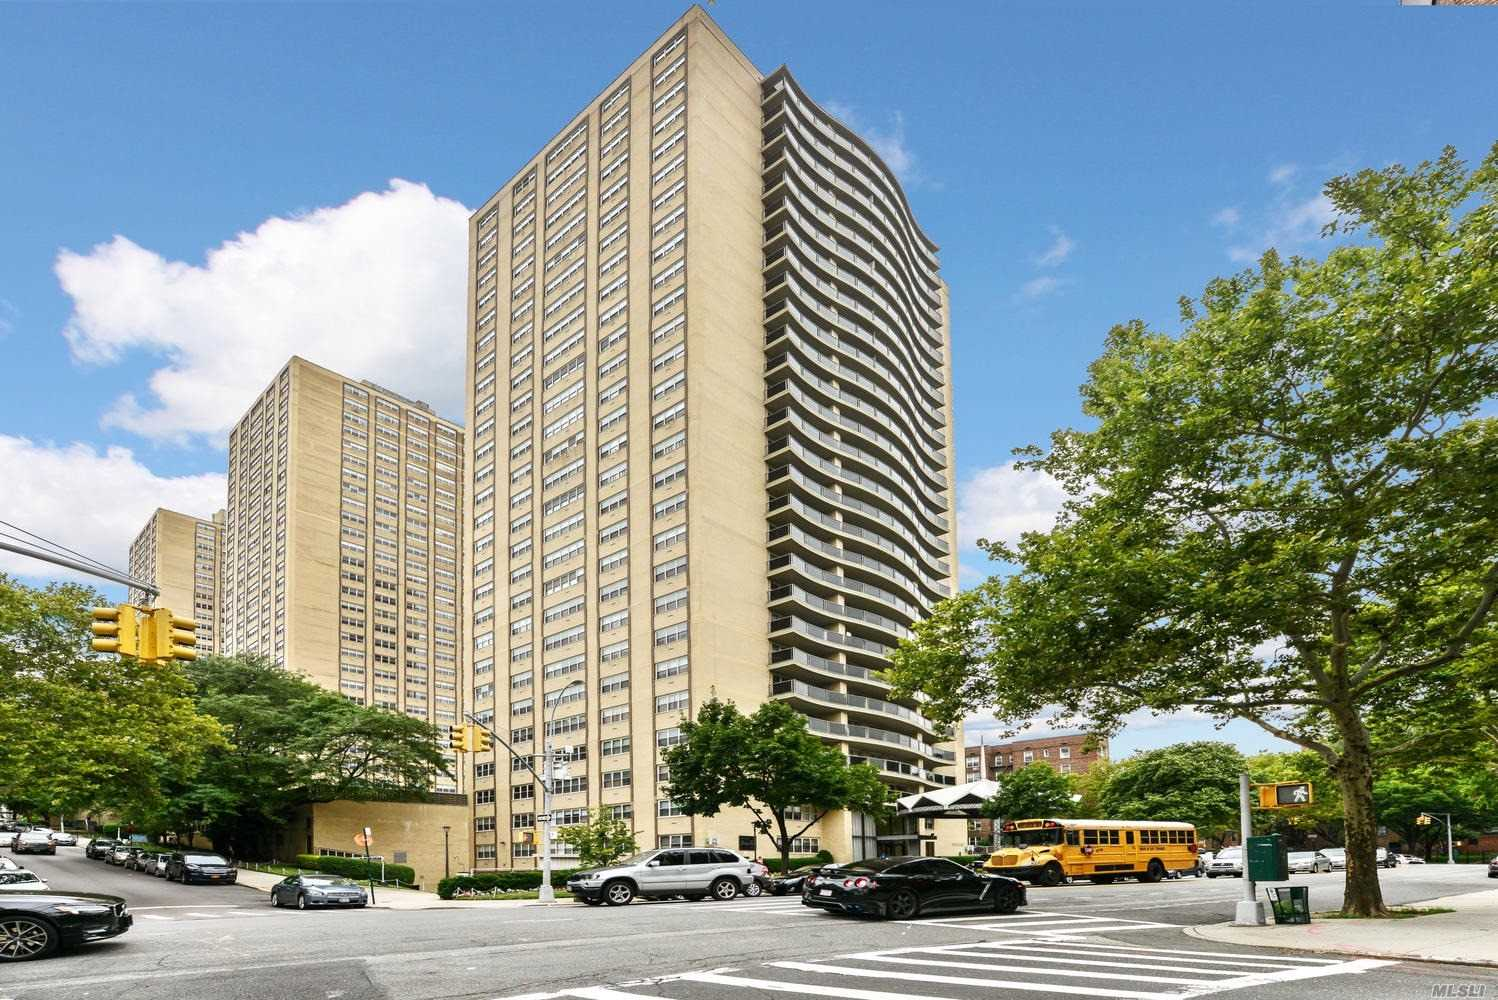 Rare Opportunity To Own Junior 4 Birchwood Towers In Luxury 24Hr. Doorman Bldg. Huge Liv. Rm, Xlg Master Br, Spacious 2nd Br. Ample Closet Space. Huge Communal Terrace & Playground.New Gym. Parking Garage. Just Few Steps To Subway & Express Bus. Steps To All Transport & Shopping & Austin Street. Can Be Sublet Up To 10Yrs After 3Yrs Residence.